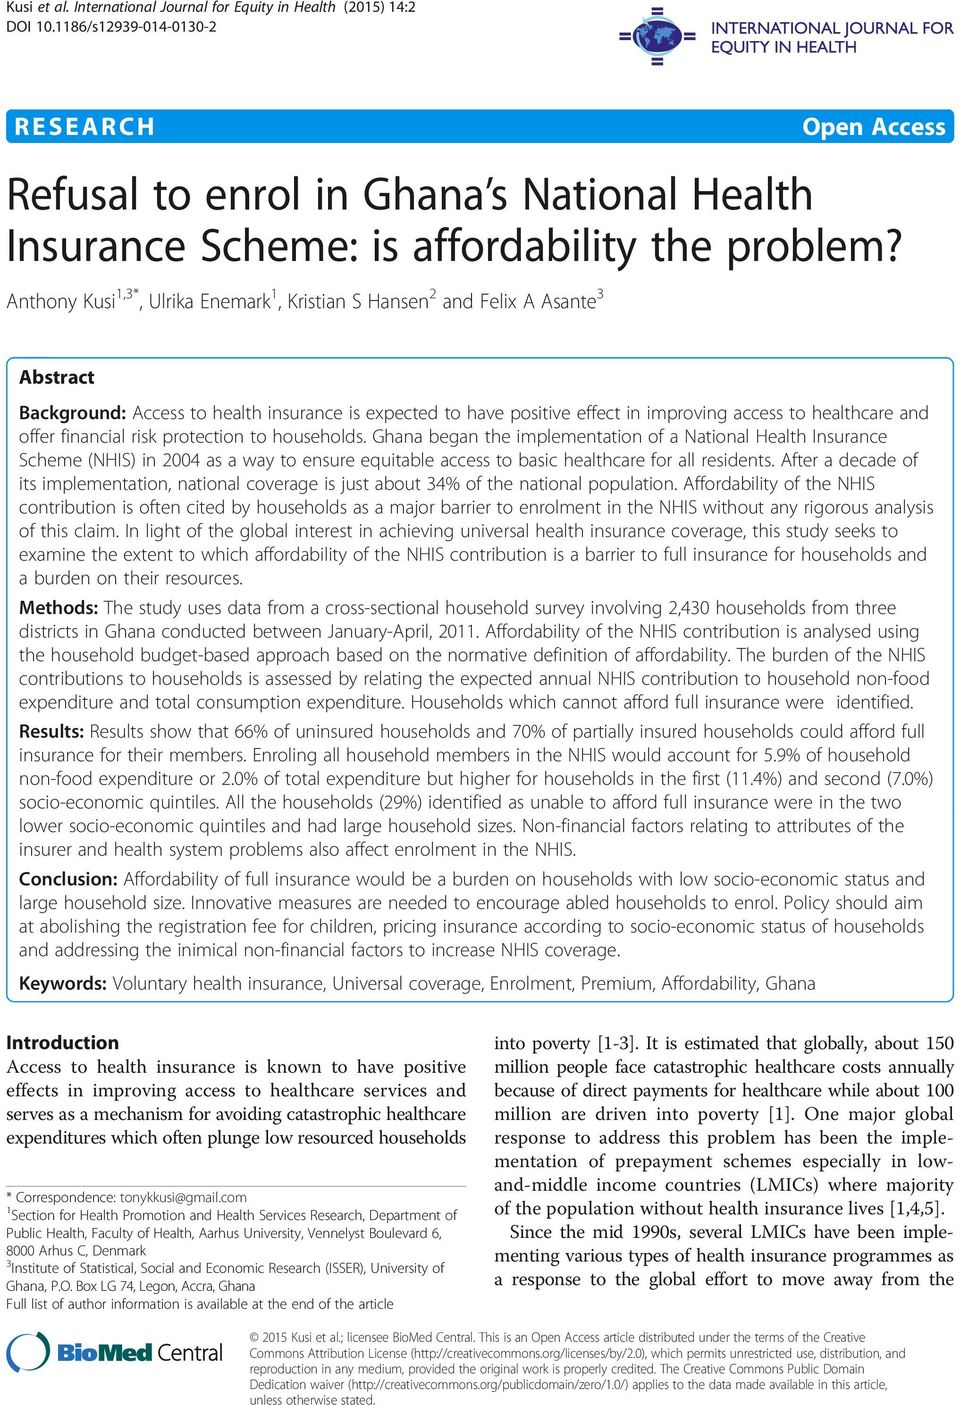 Anthony Kusi 1,3*, Ulrika Enemark 1, Kristian S Hansen 2 and Felix A Asante 3 Abstract Background: Access to health insurance is expected to have positive effect in improving access to healthcare and